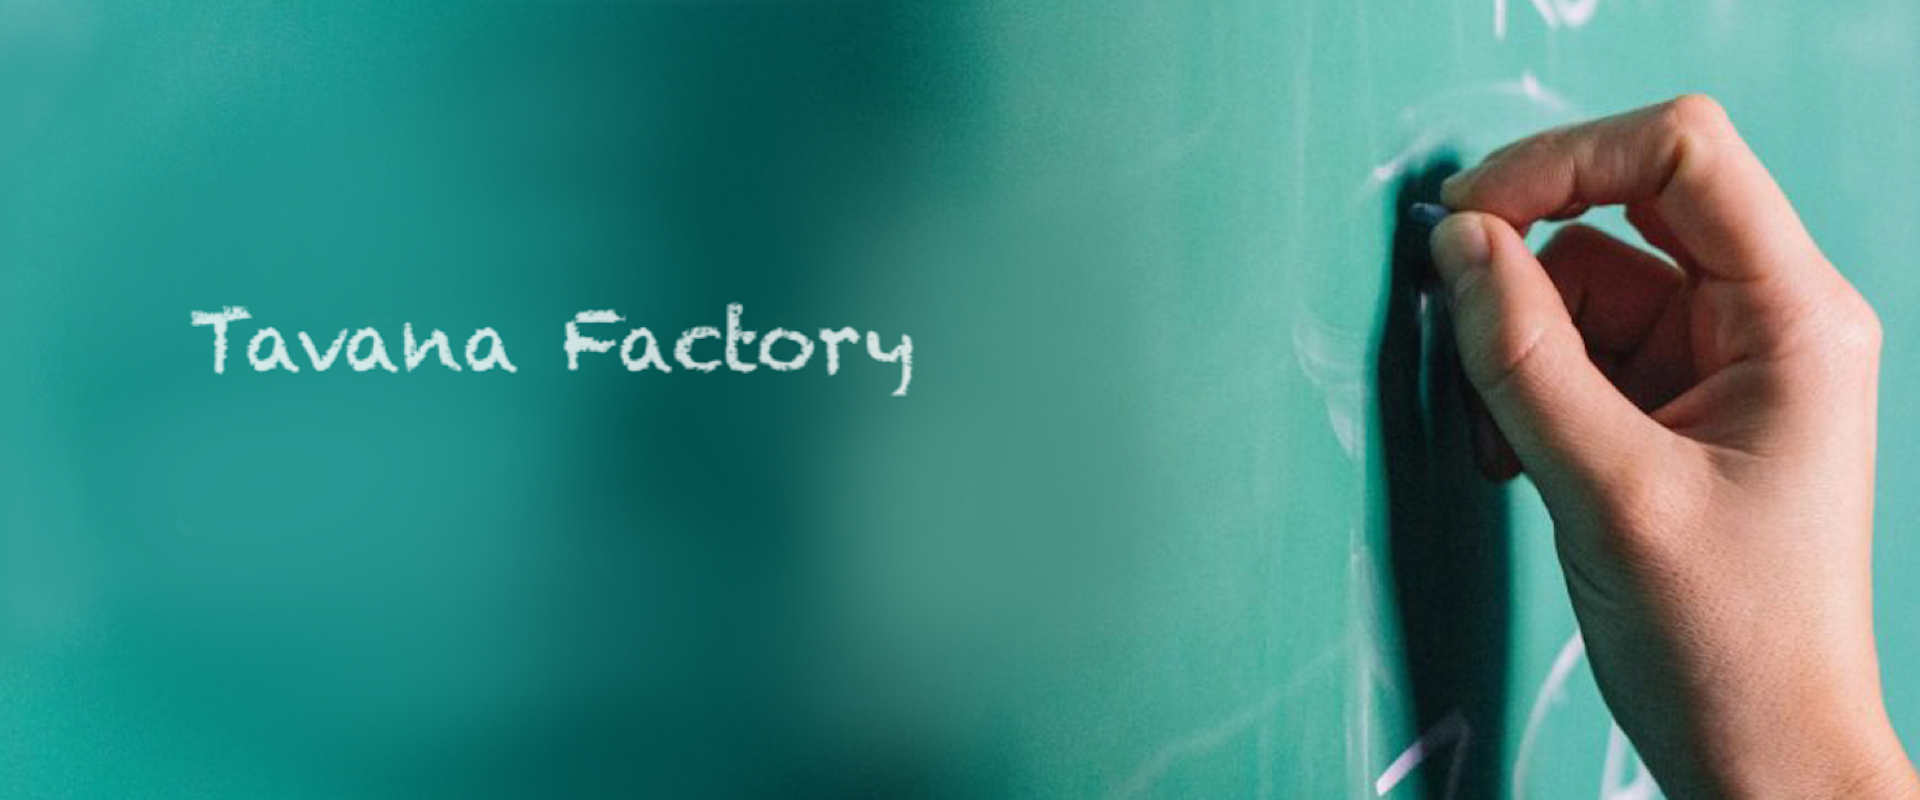 tavana-factory-slider